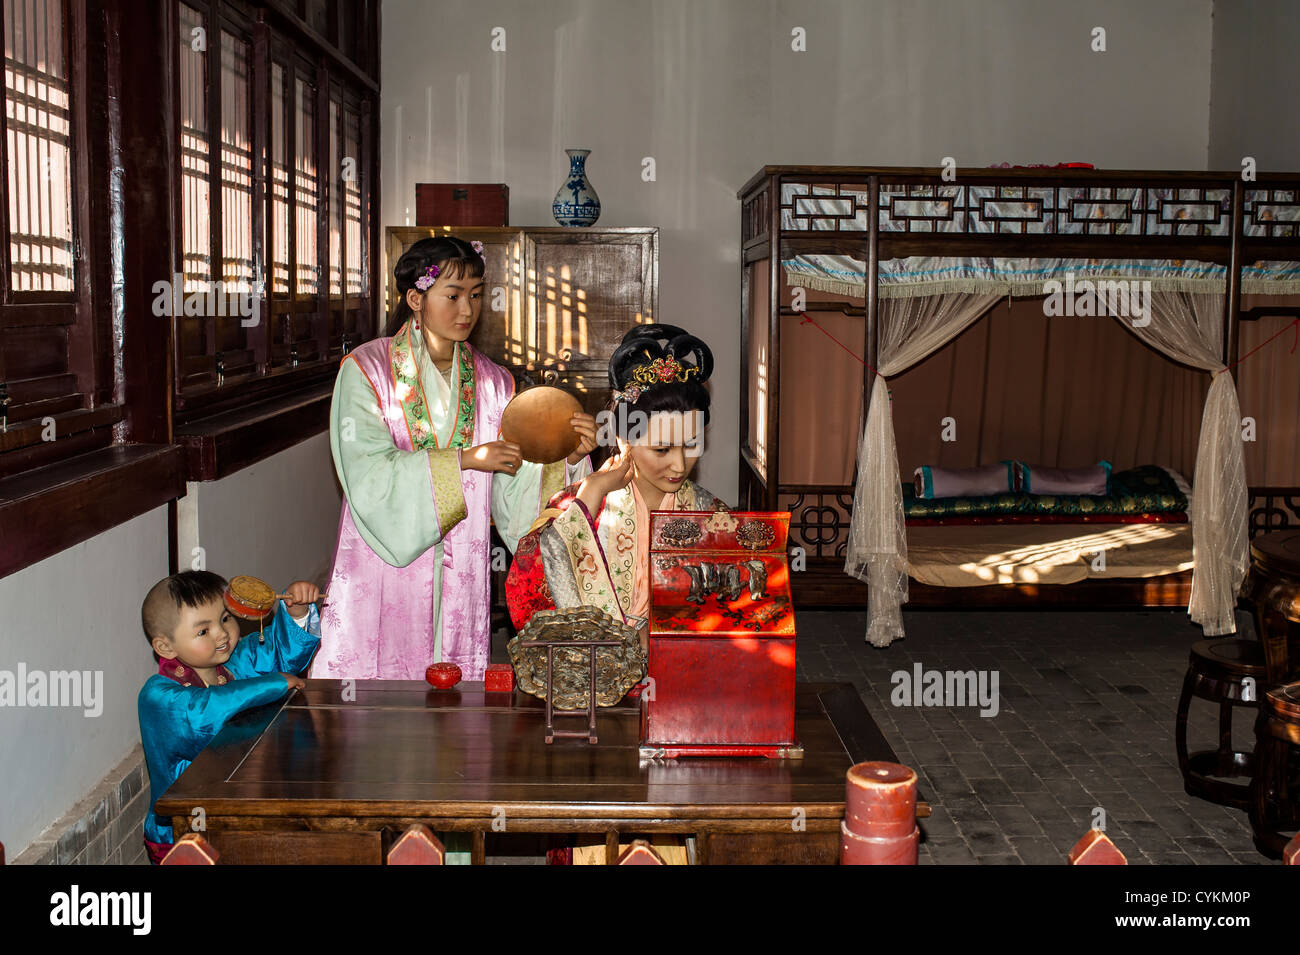 The waxwork of the family of the Ming dynasty general, Jiayuguan castle, China - Stock Image